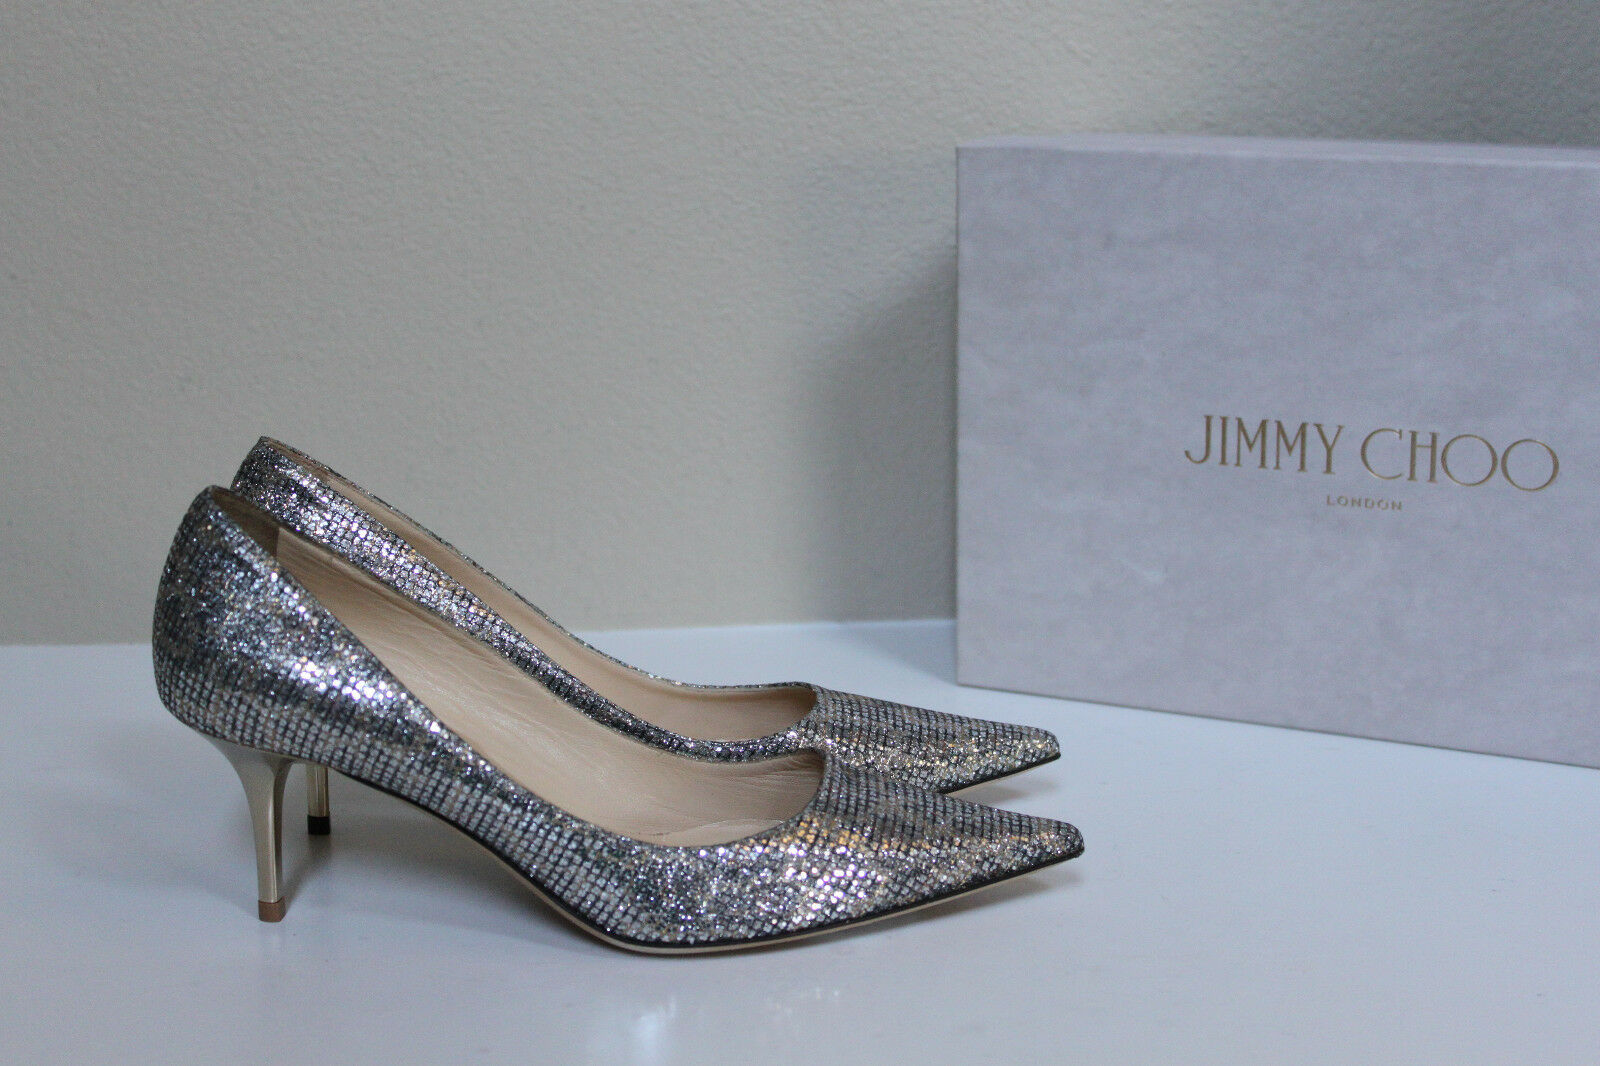 in vendita scontato del 70% New 7.5 7.5 7.5   37.5 Jimmy Choo Aurora Leopard print glitter fabric Pointed Pump Shoe  vendita economica